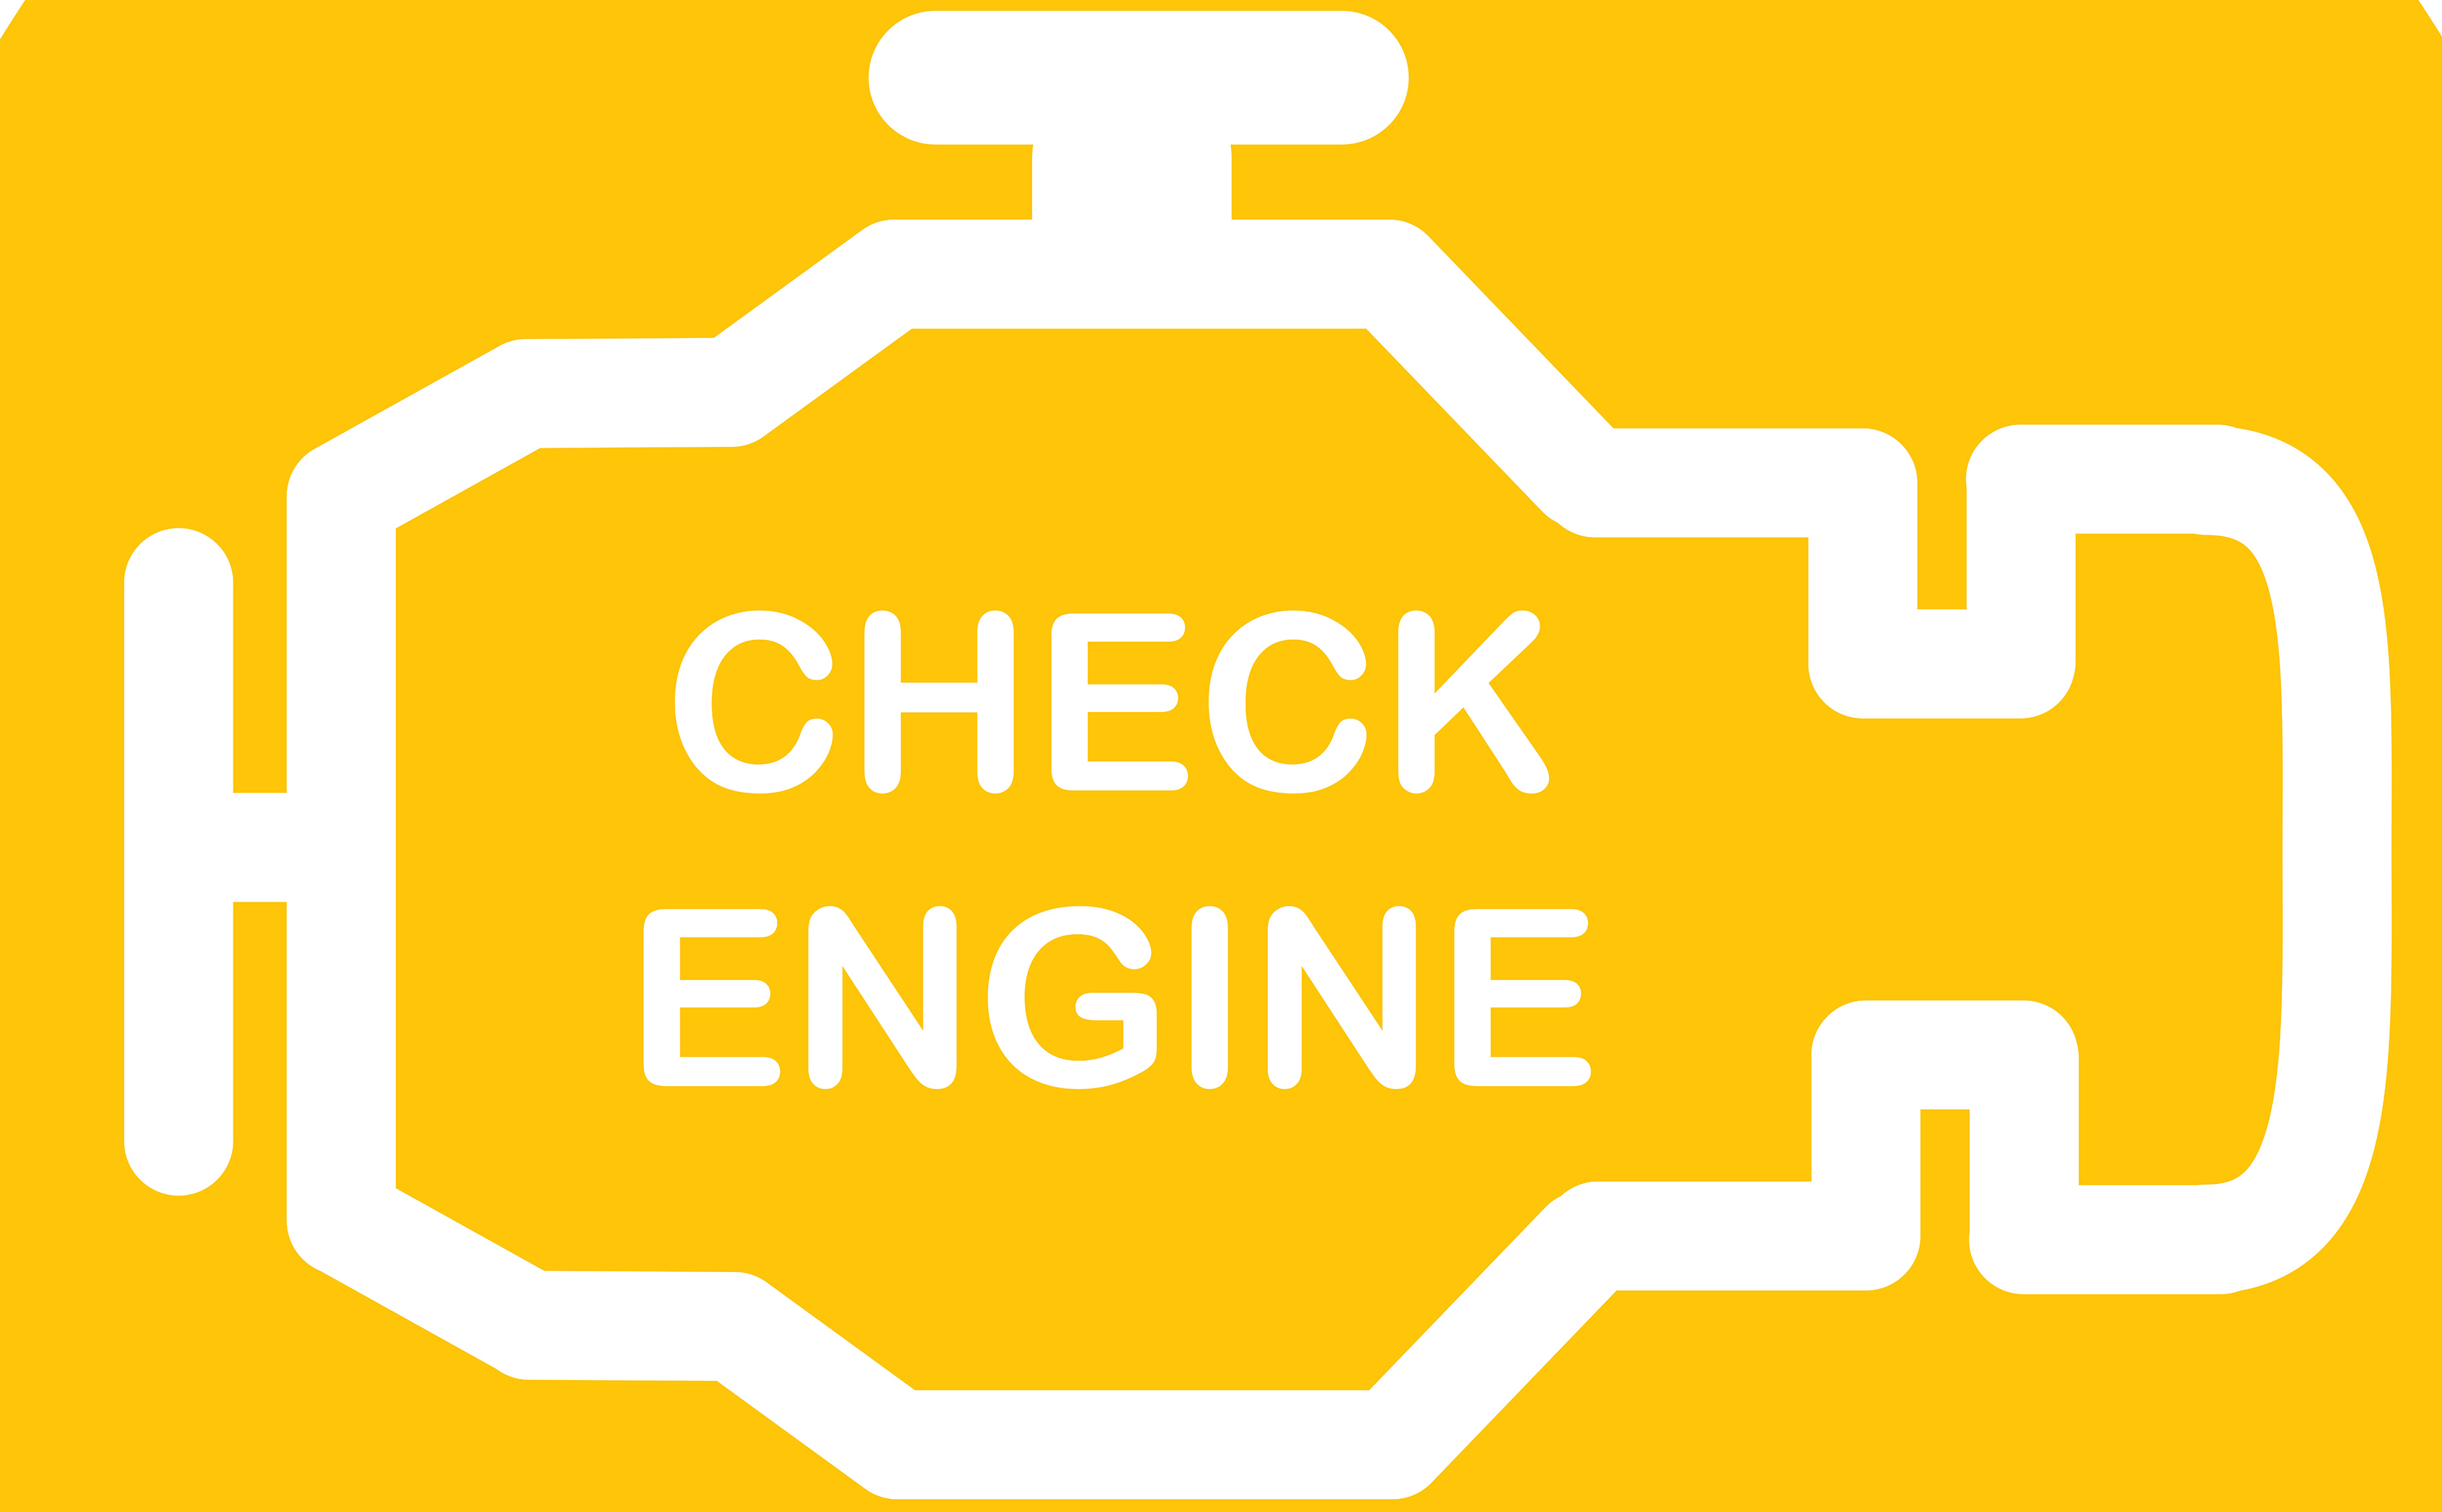 check your engine!